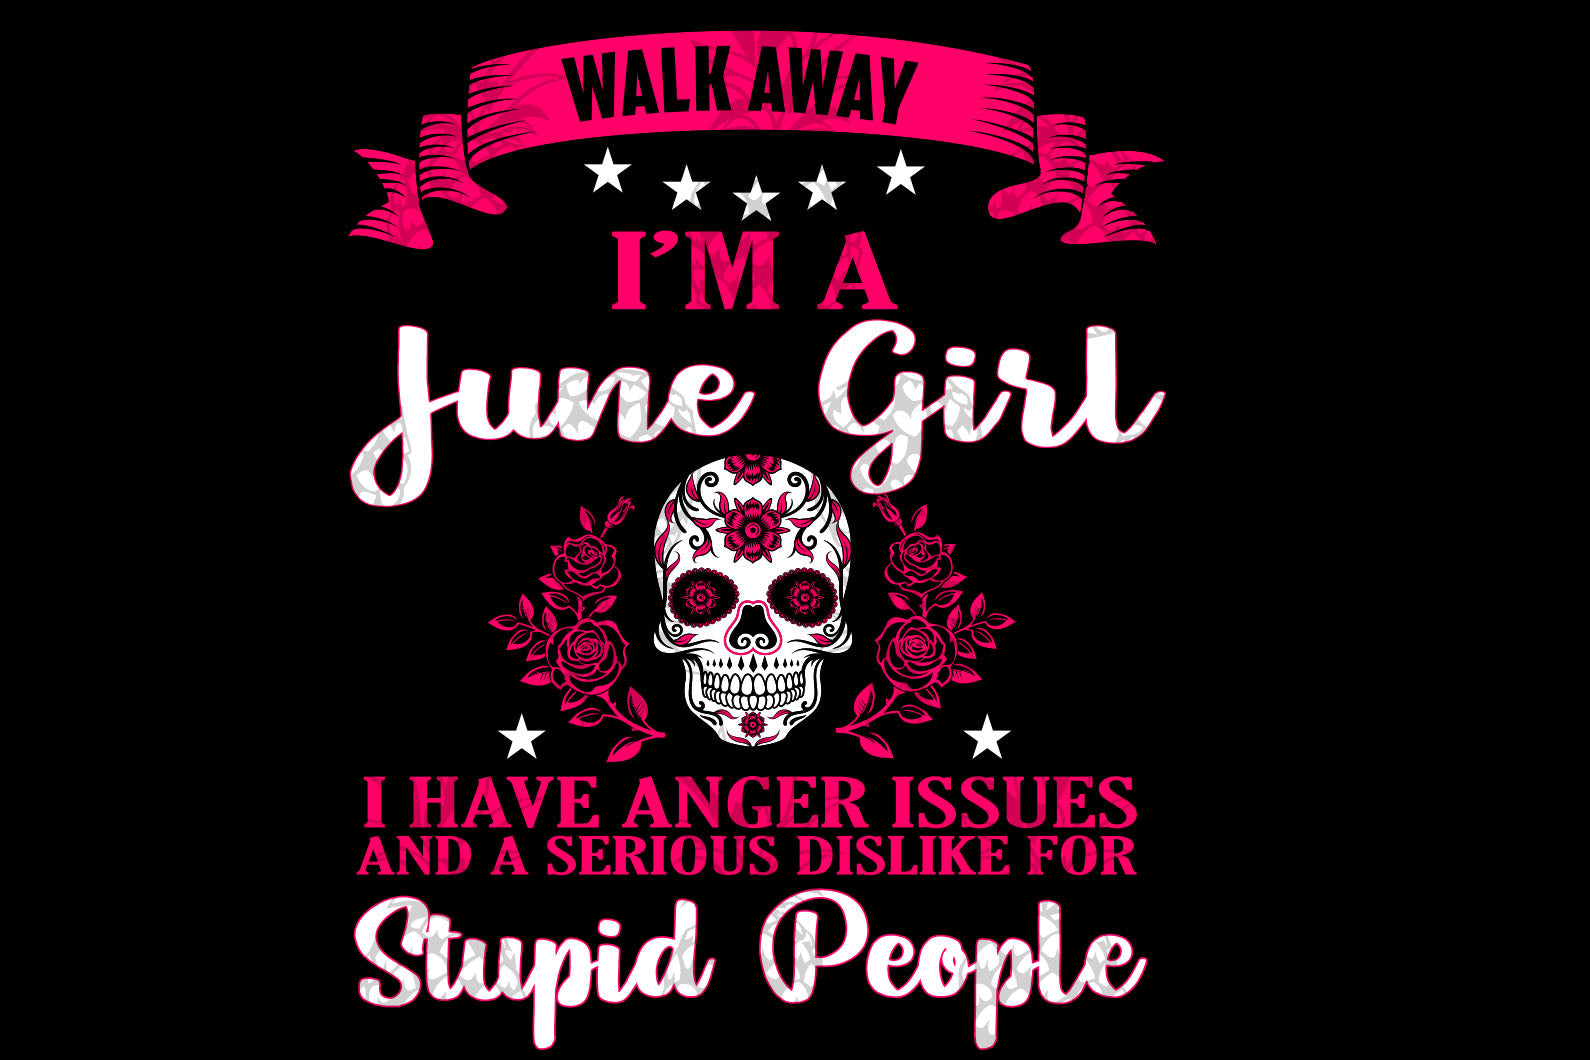 I am June girl svg,born in June girl,stupid people,living my best life, June birthday, June girl shirt, June girl art, June birthday gift,silhouette svg, decal and vinyl, cricut svg files,